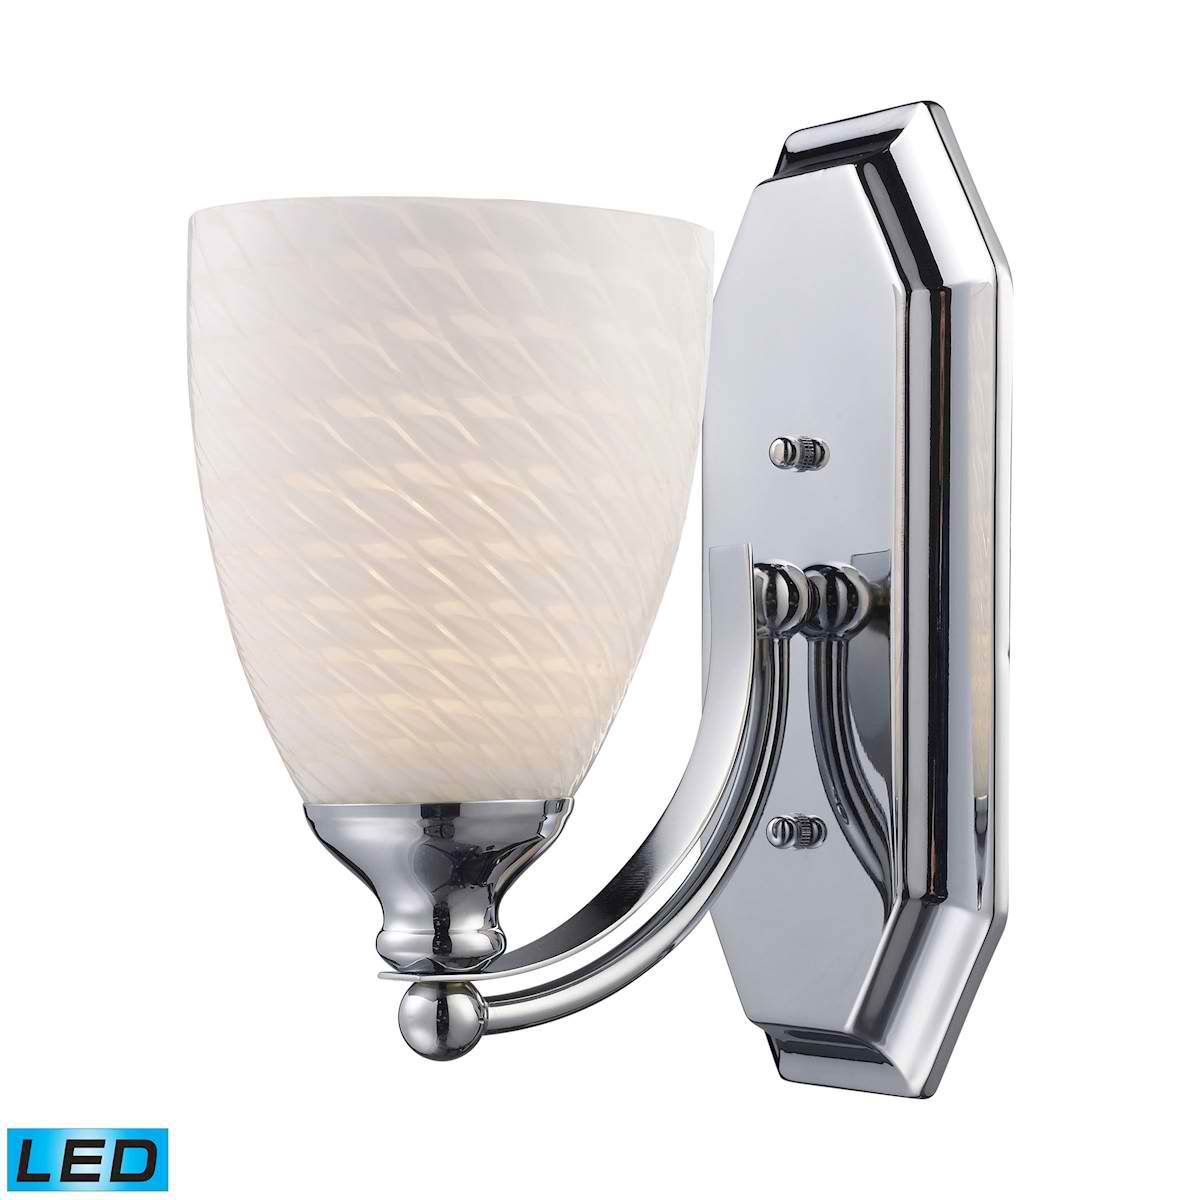 1 Light Vanity in Polished Chrome and White Swirl Glass - LED Offering Up To 800 Lumens (60 Watt Equivalent)